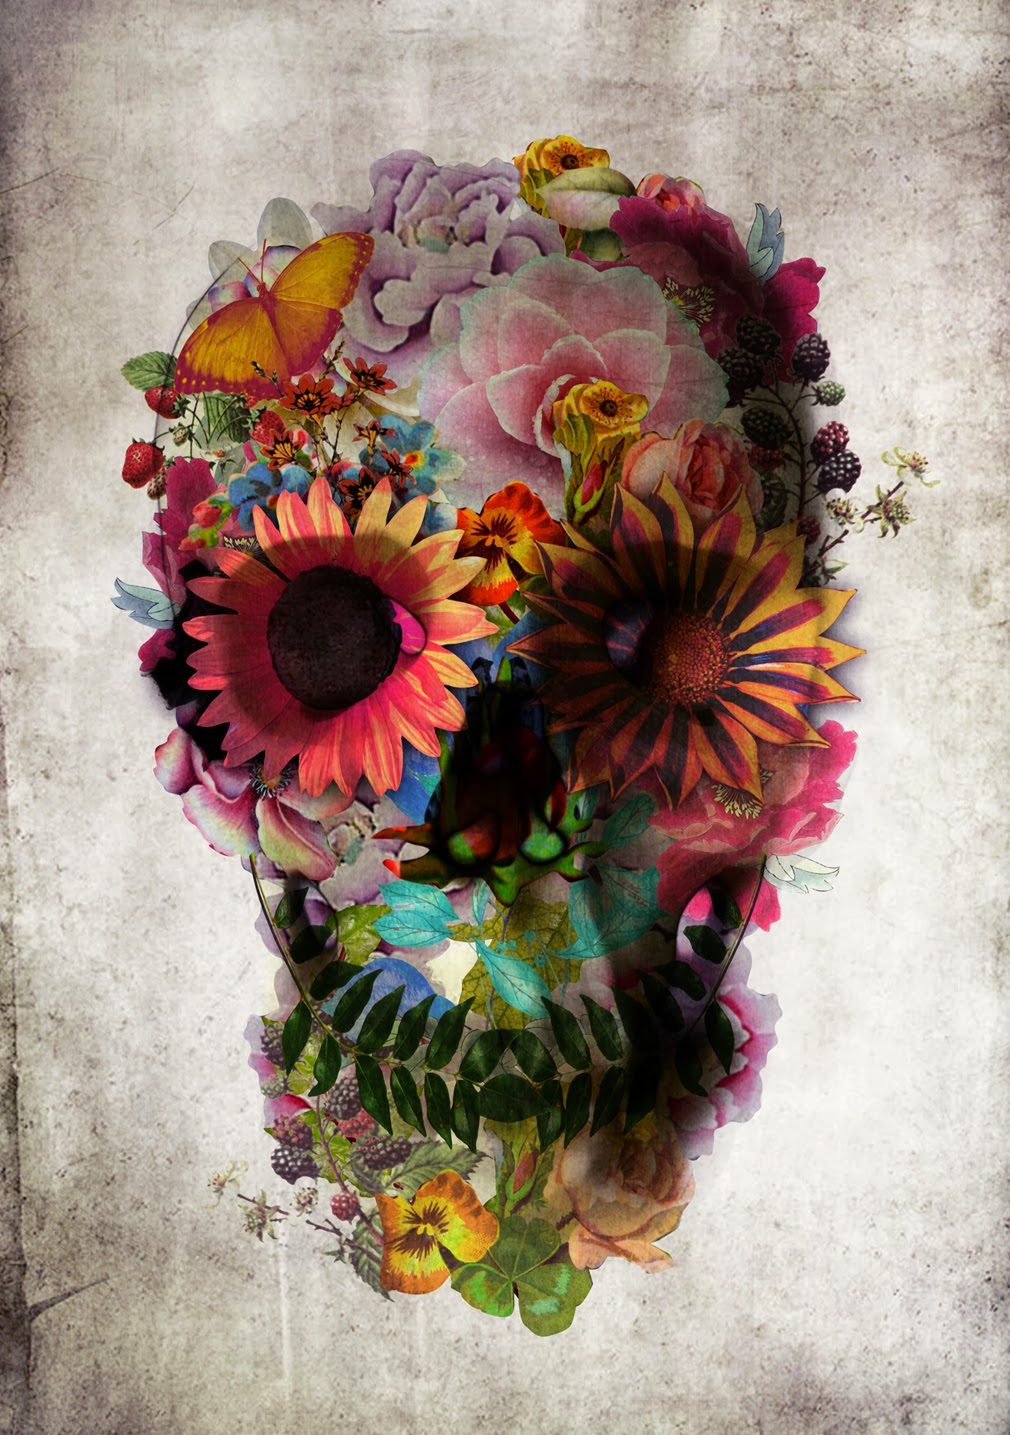 ©Ali Gulec. The Message. Decorative Skulls. Mixed Media